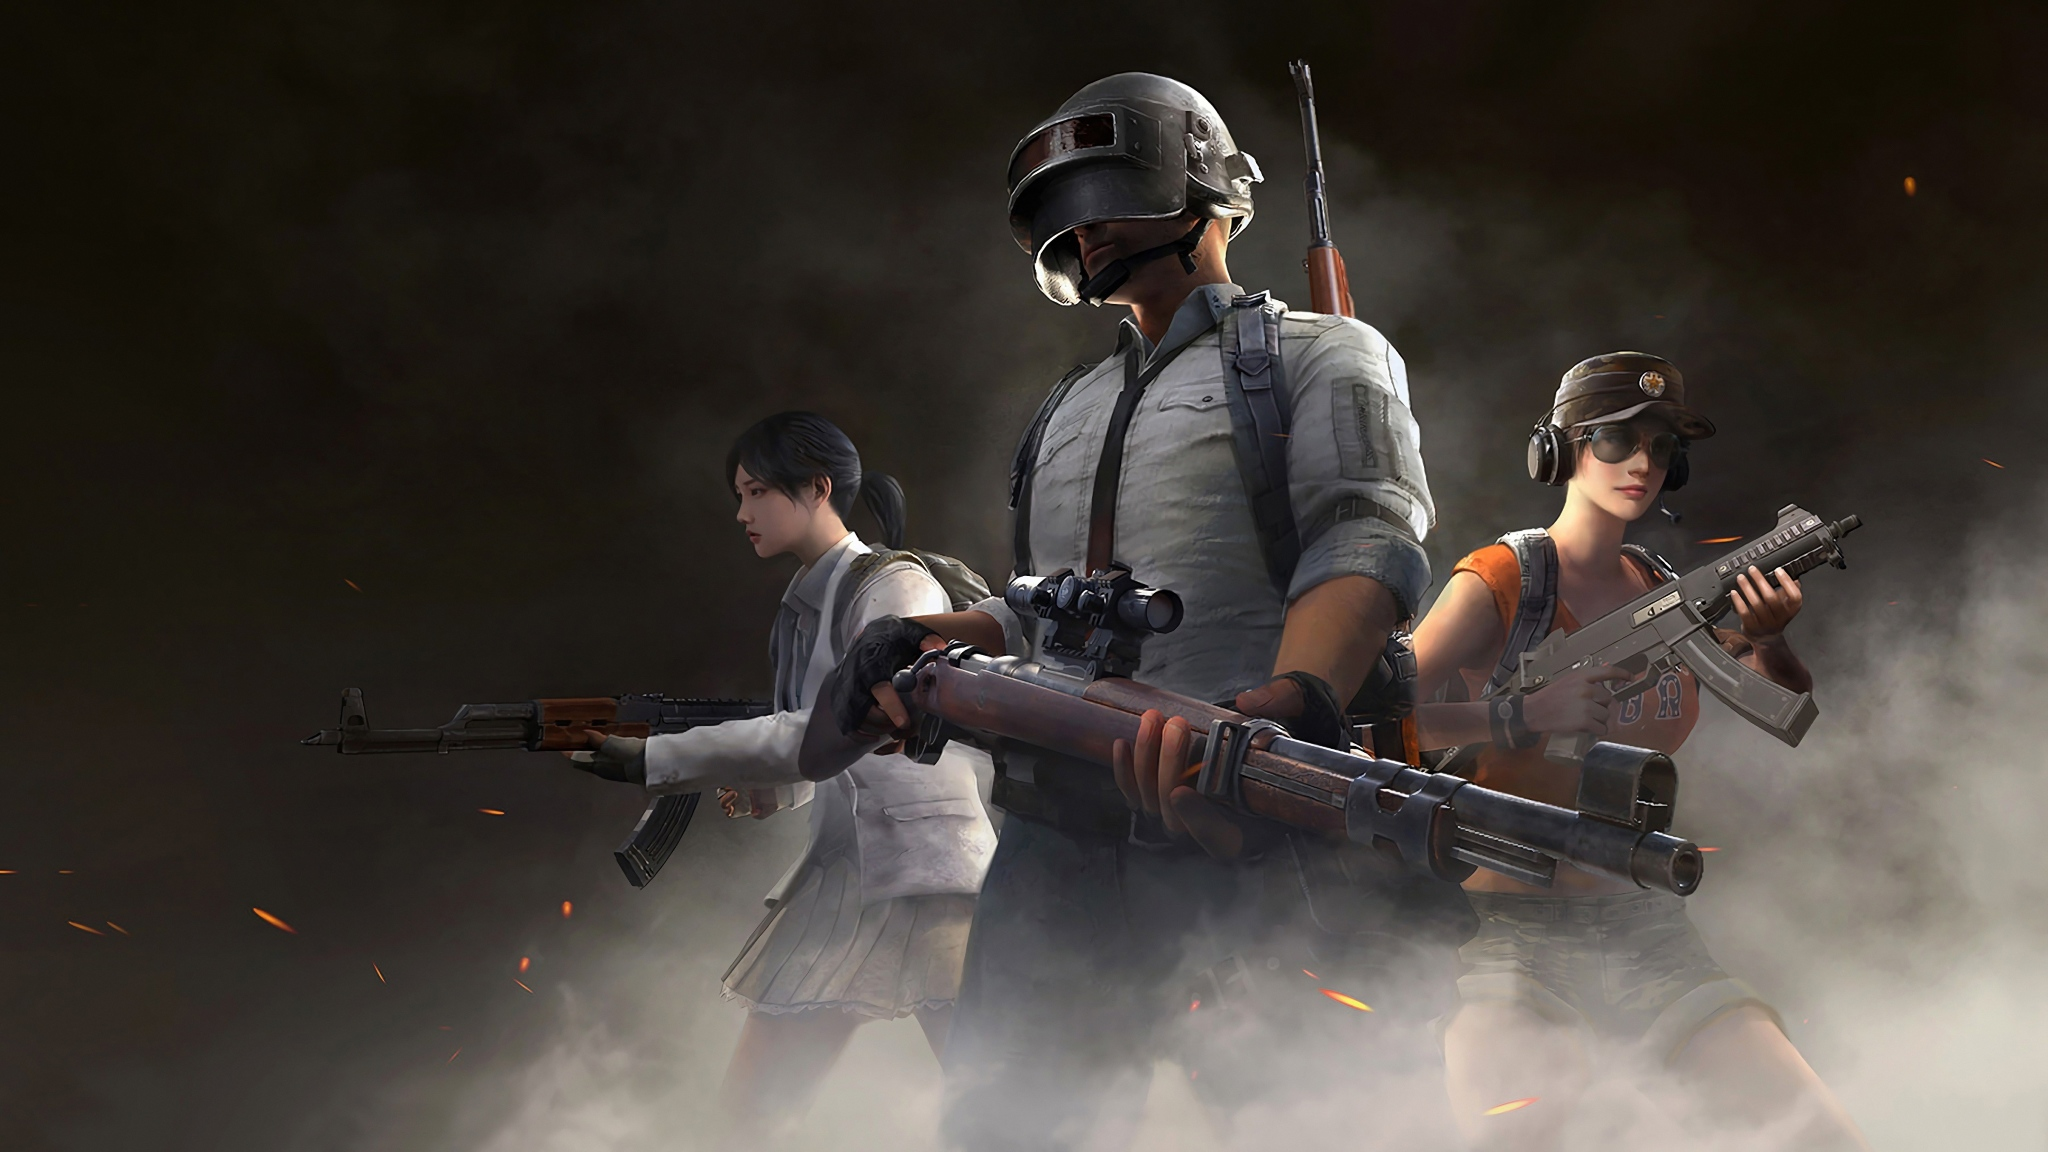 1920x1080 Pubg Characters 4k Laptop Full Hd 1080p Hd 4k: Pubg, HD 4K Wallpaper